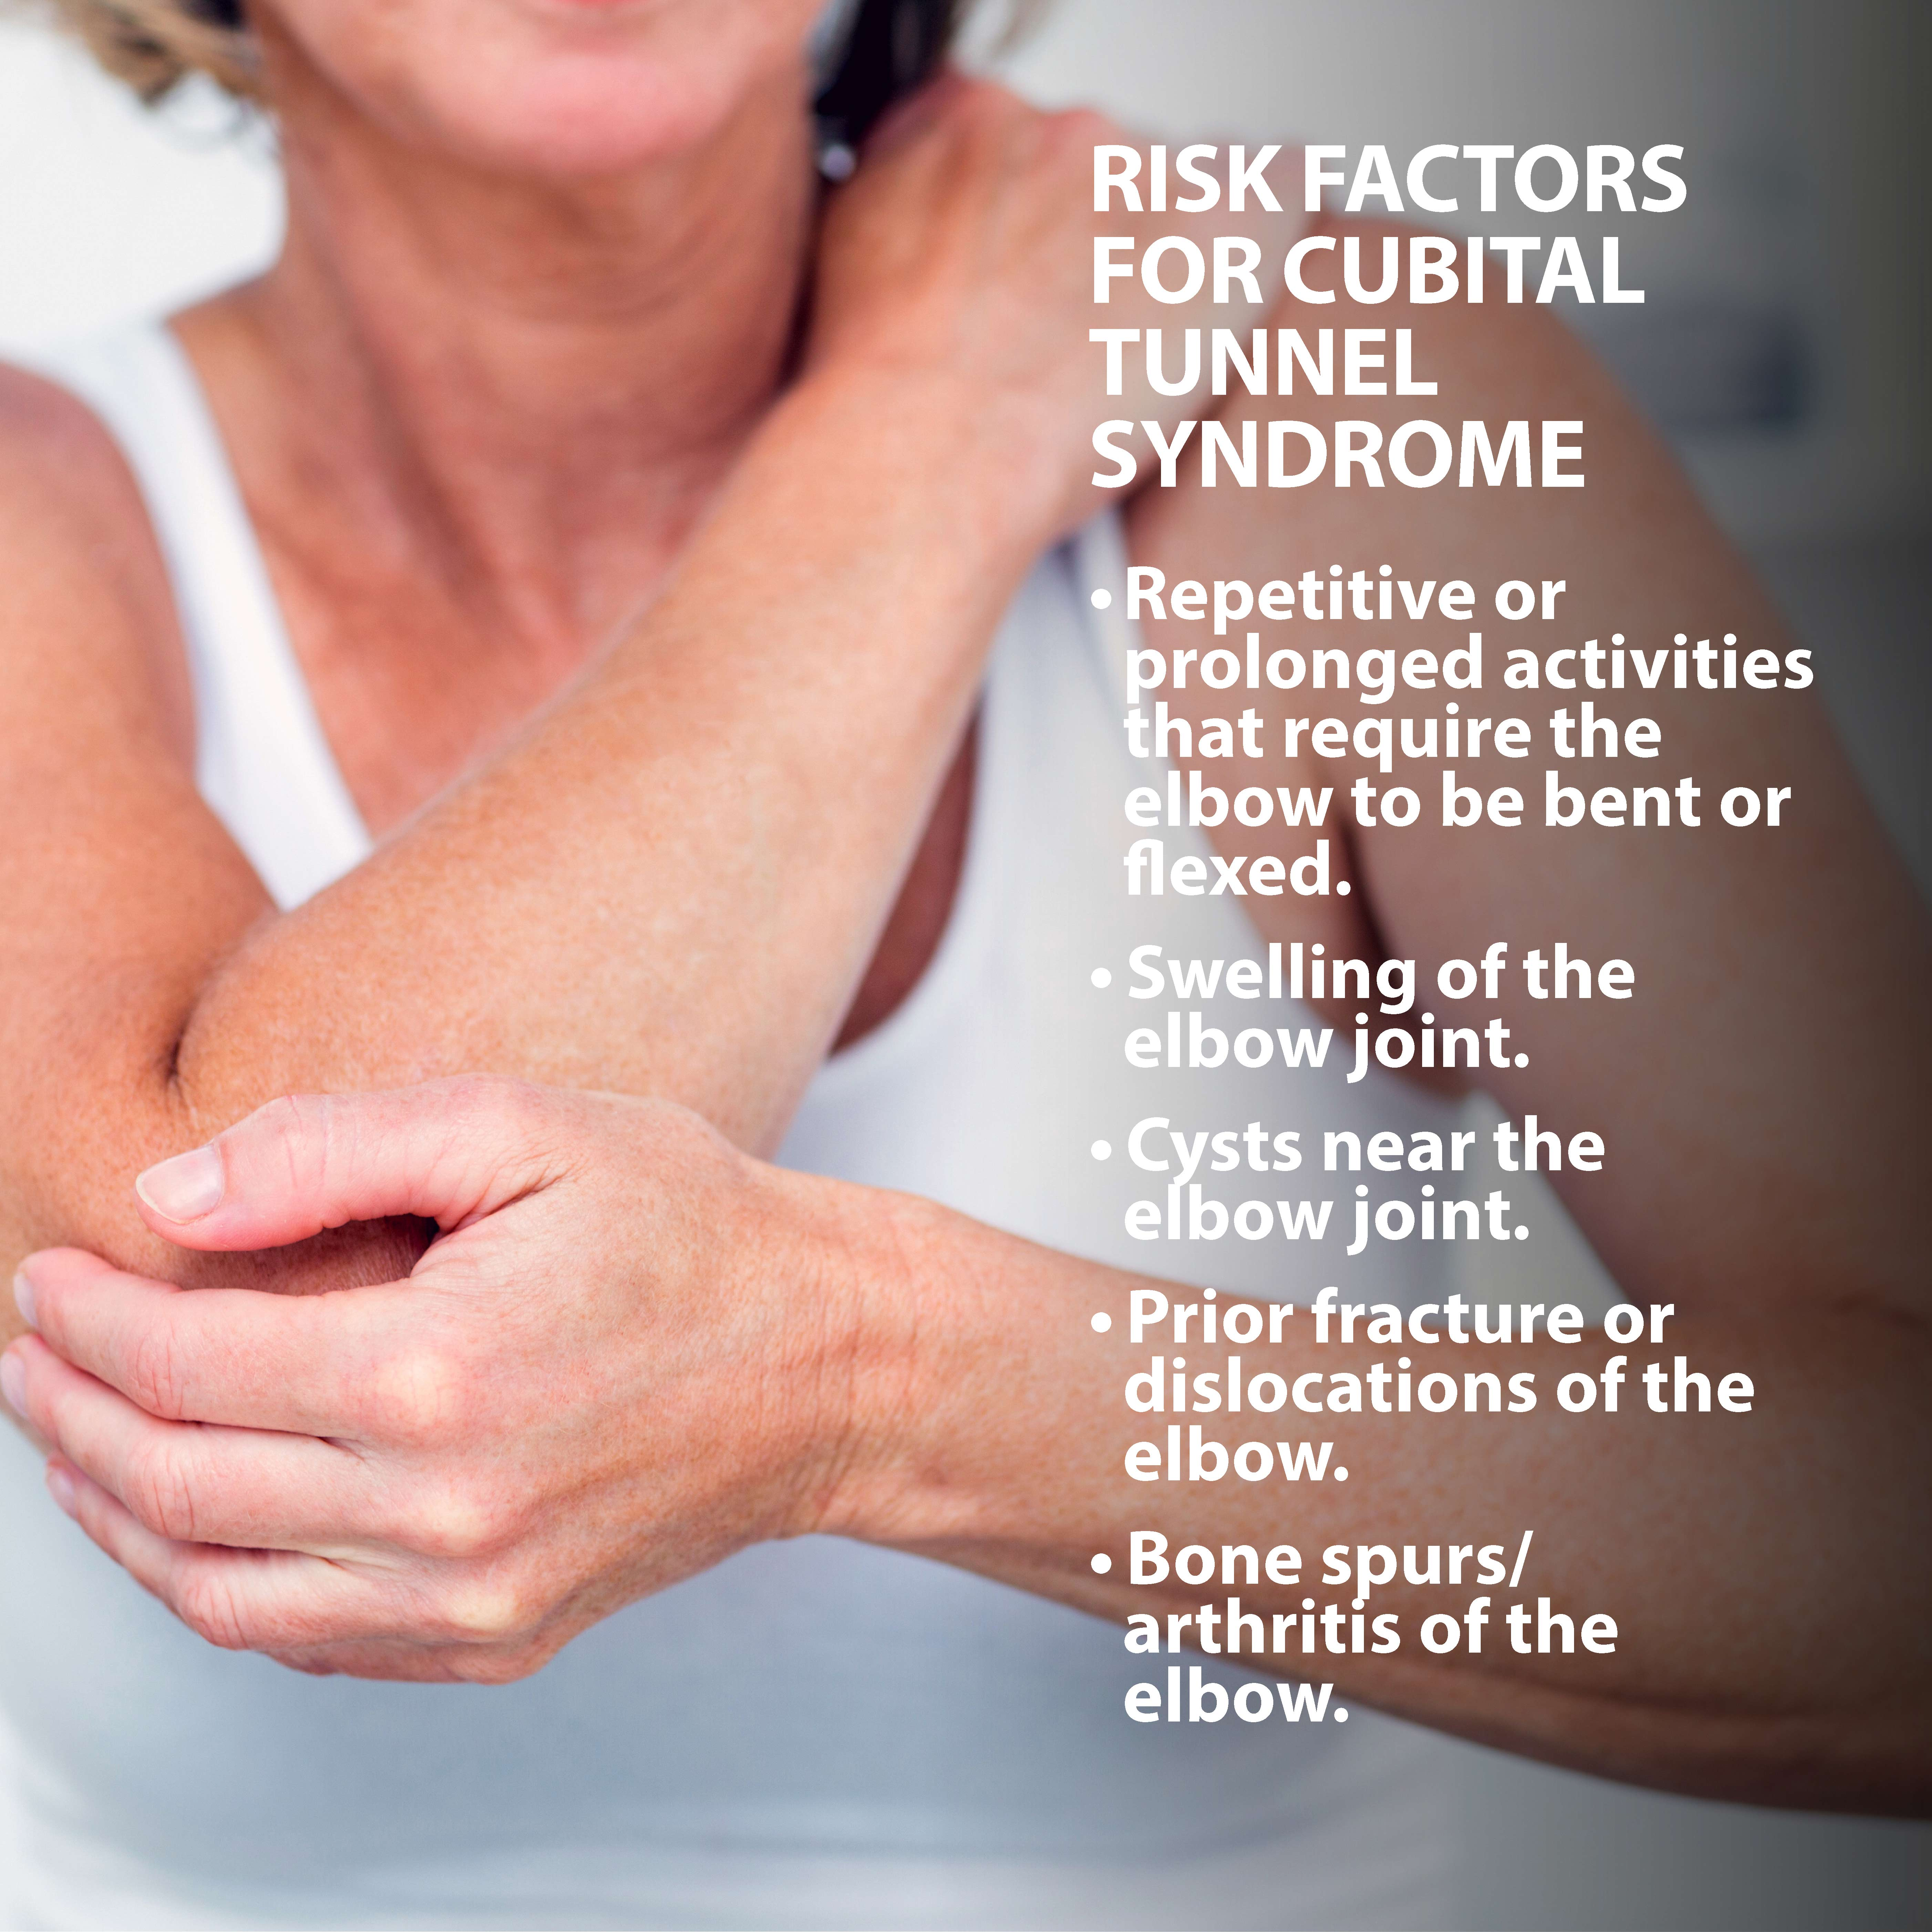 Cubital Tunnel Syndrome Info | Florida Orthopaedic Institute